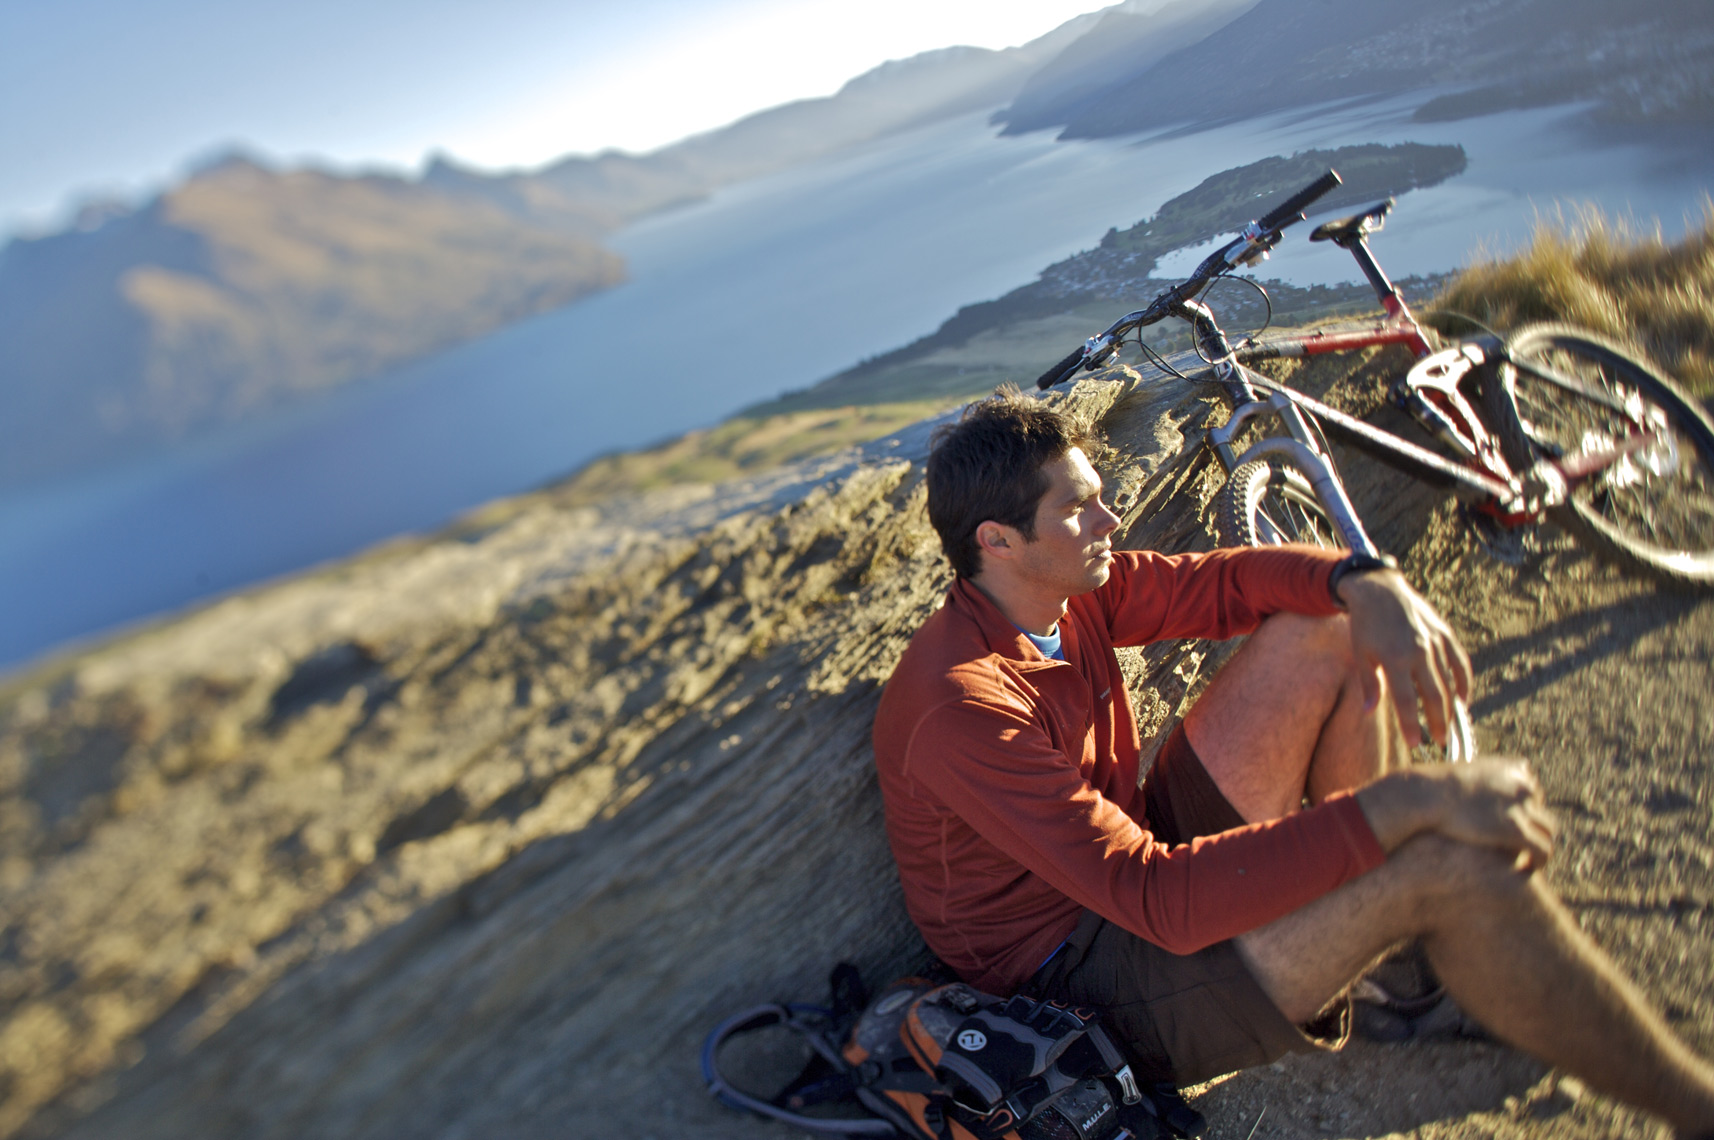 Mt biker takes a break in New Zealand/Steve Mason Photography